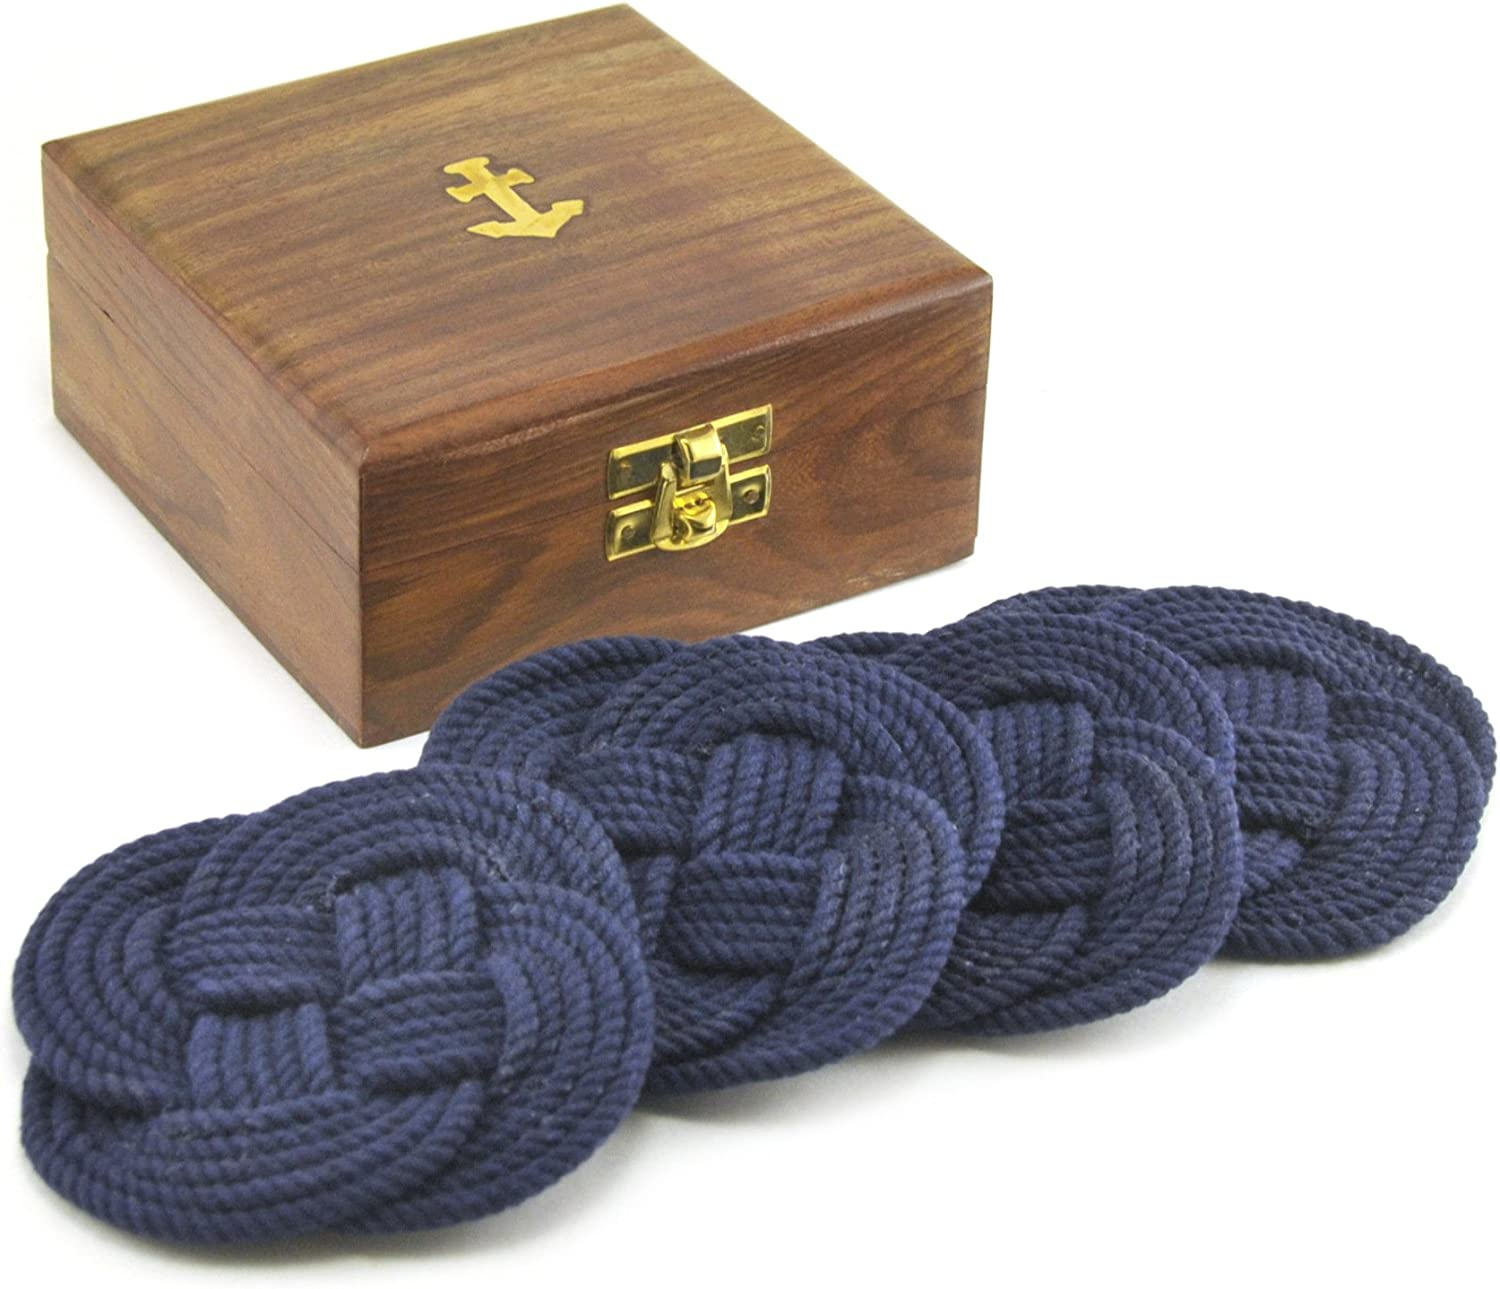 Sailor's Rope Coaster Set, Nautical Anchor Cherry Wood Box Holder, 4.75-inch, Navy Blue by Home Collection